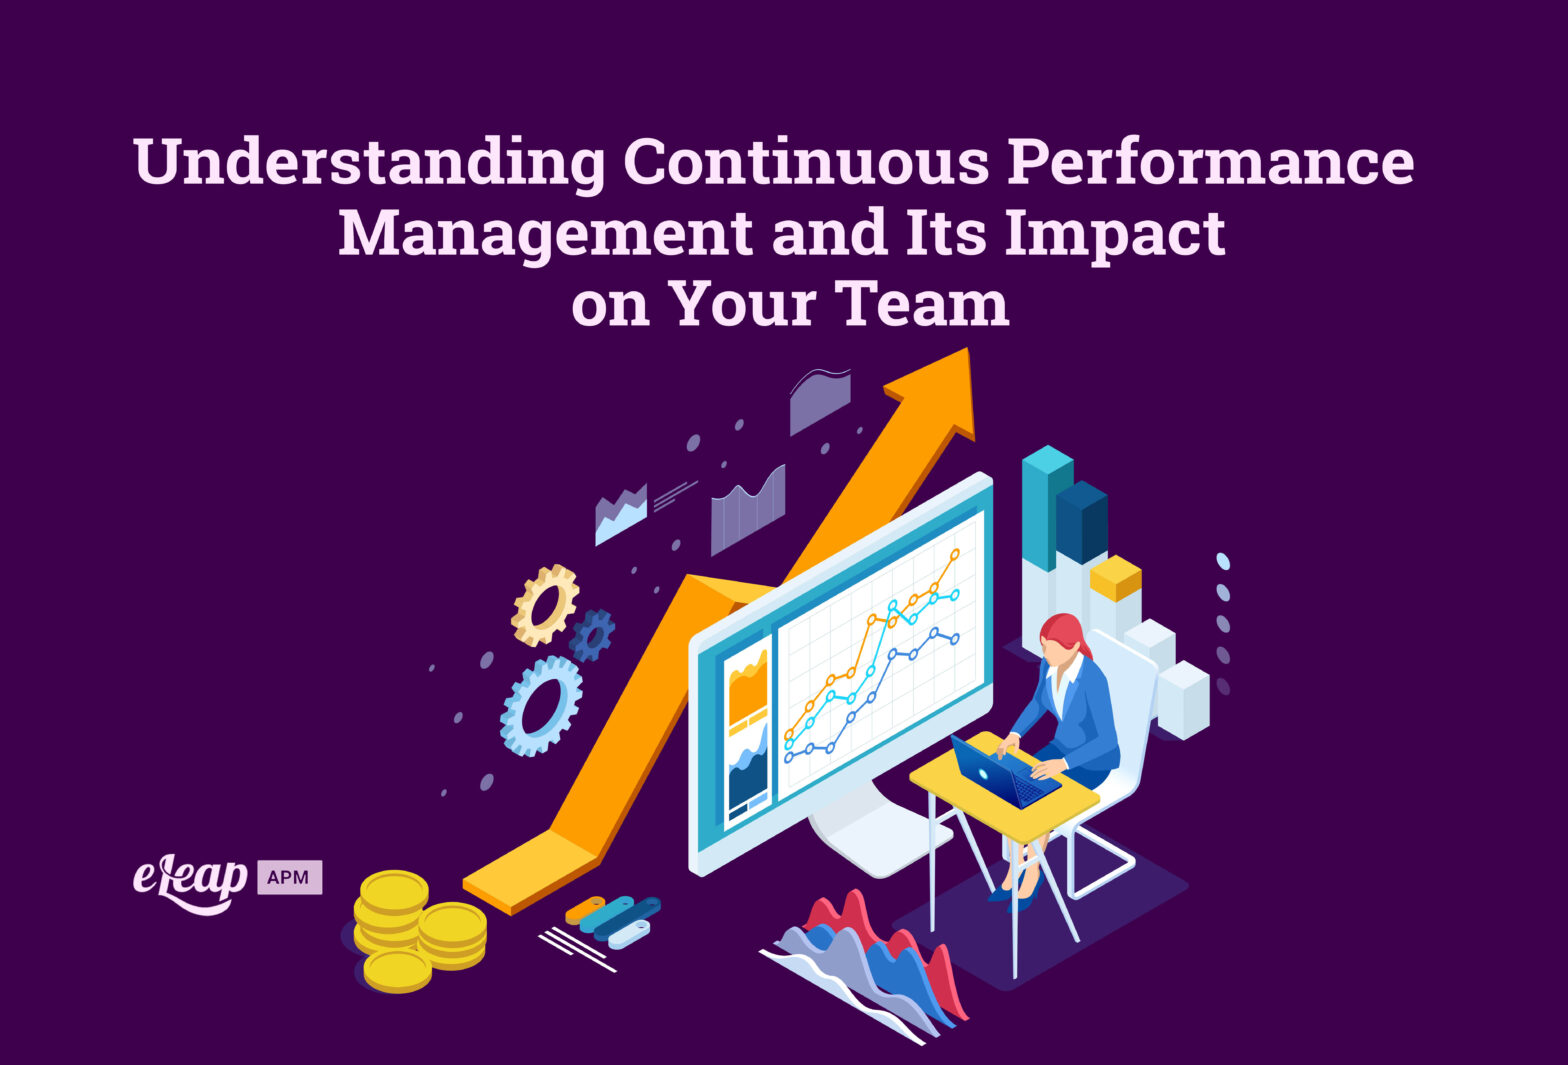 Understanding Continuous Performance Management and Its Impact on Your Team